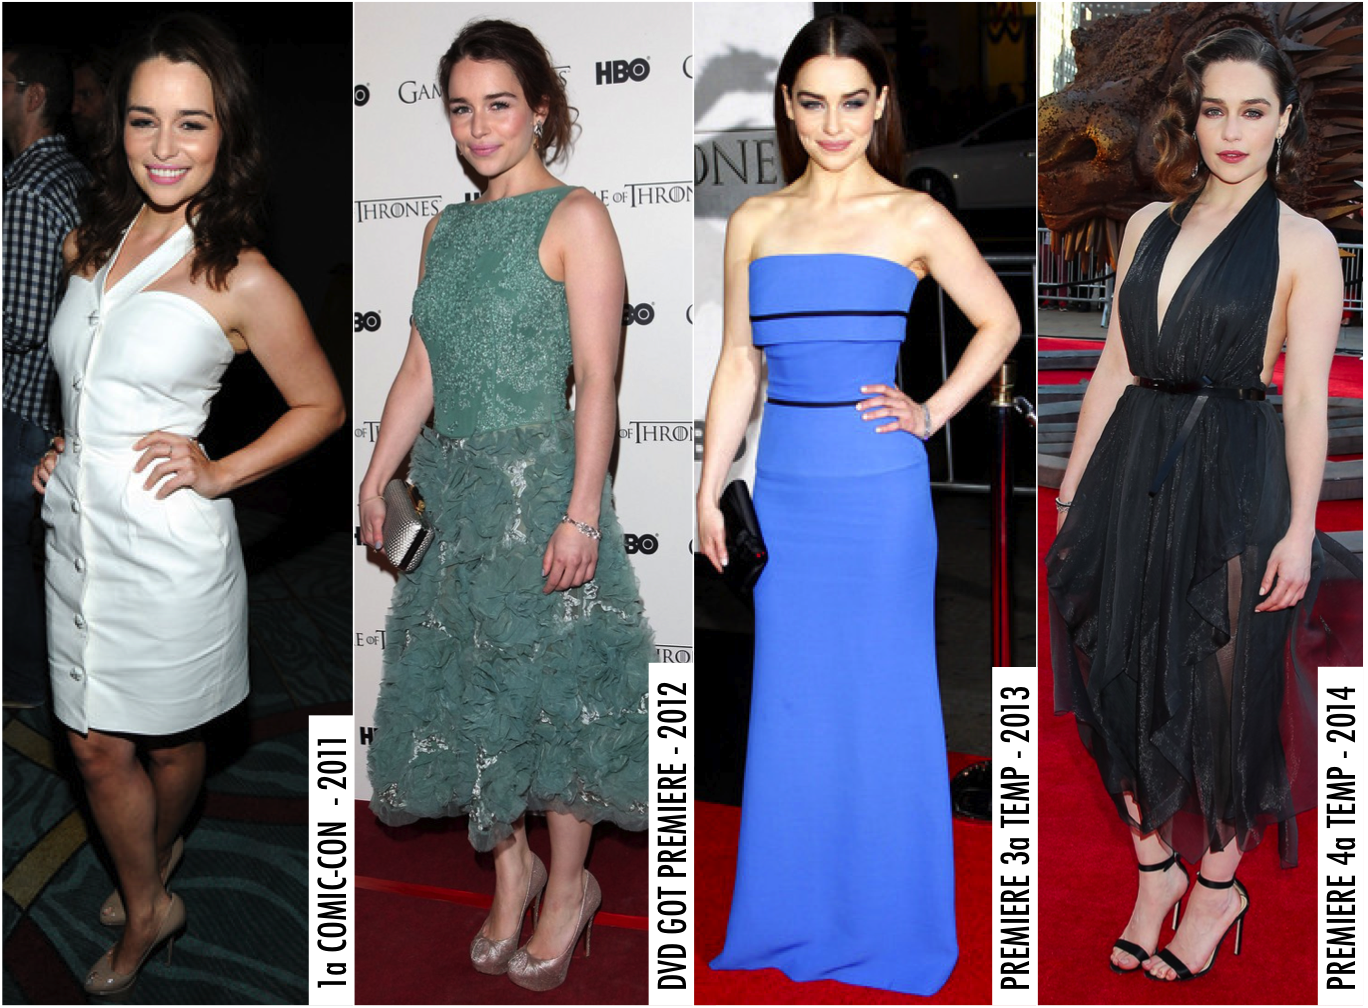 emilia clarke got fashion